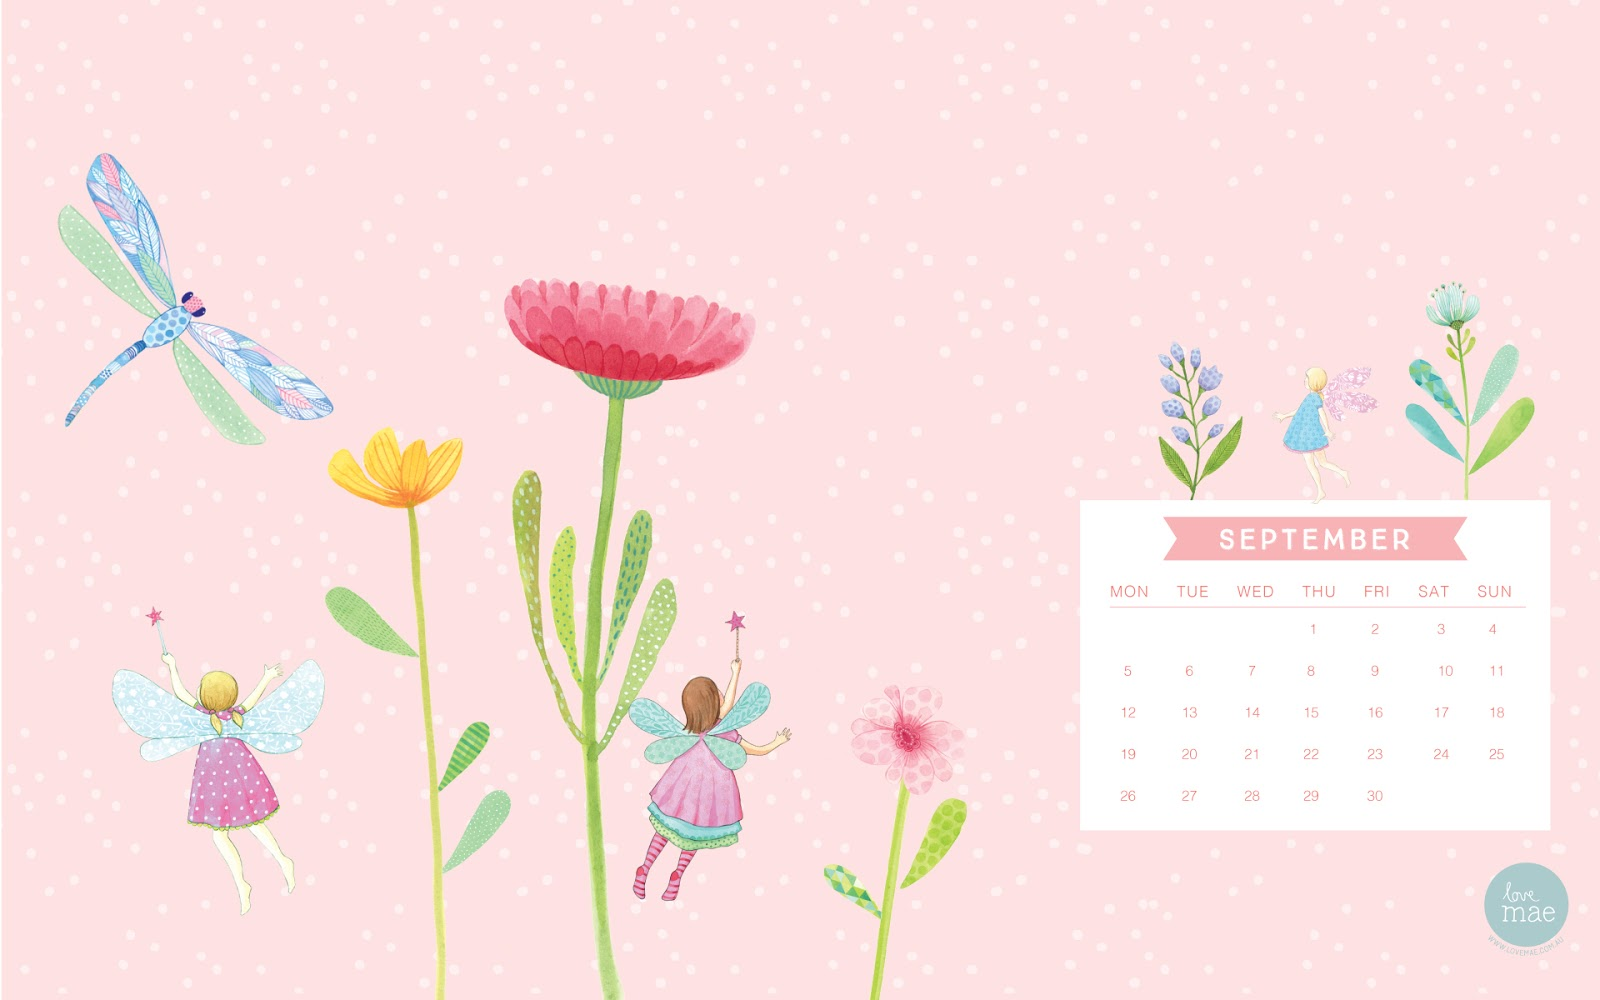 September Calendar Print   Desktop Wallpaper | Dawn Nicole Designs?